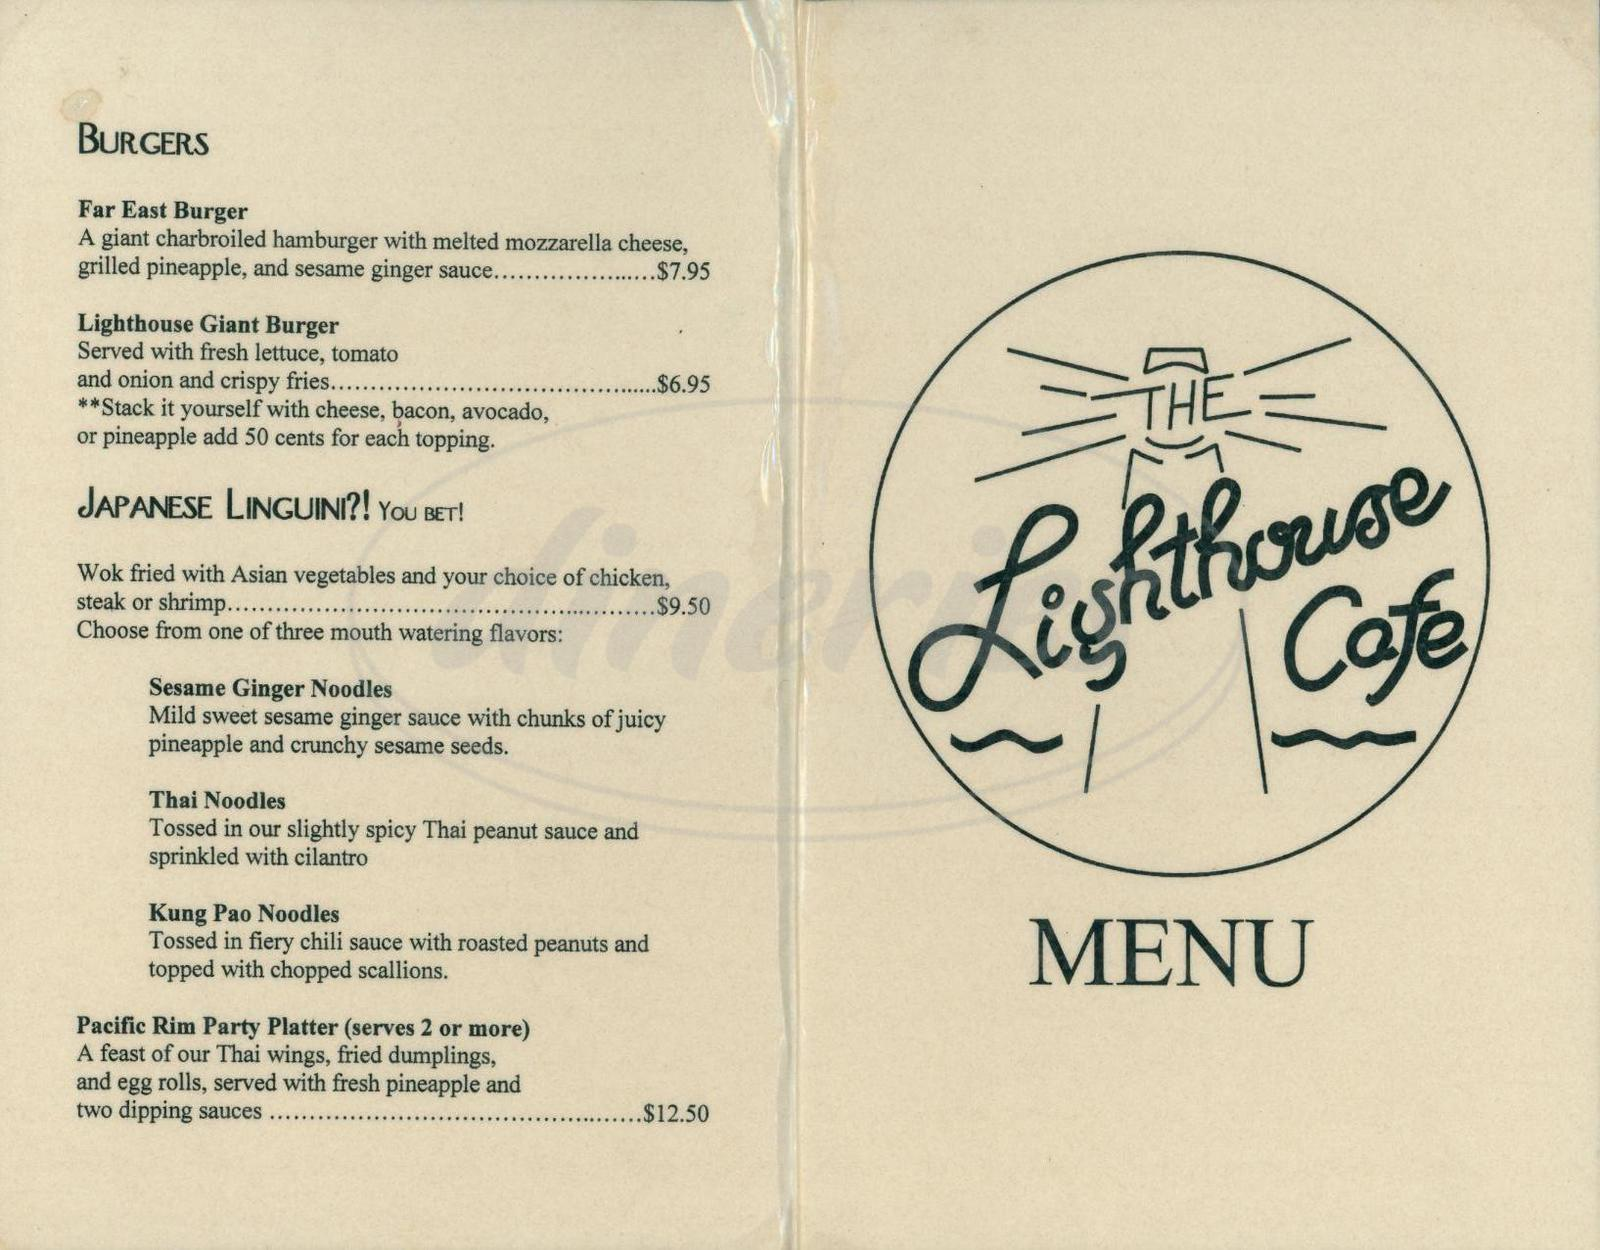 menu for The Lighthouse Cafe